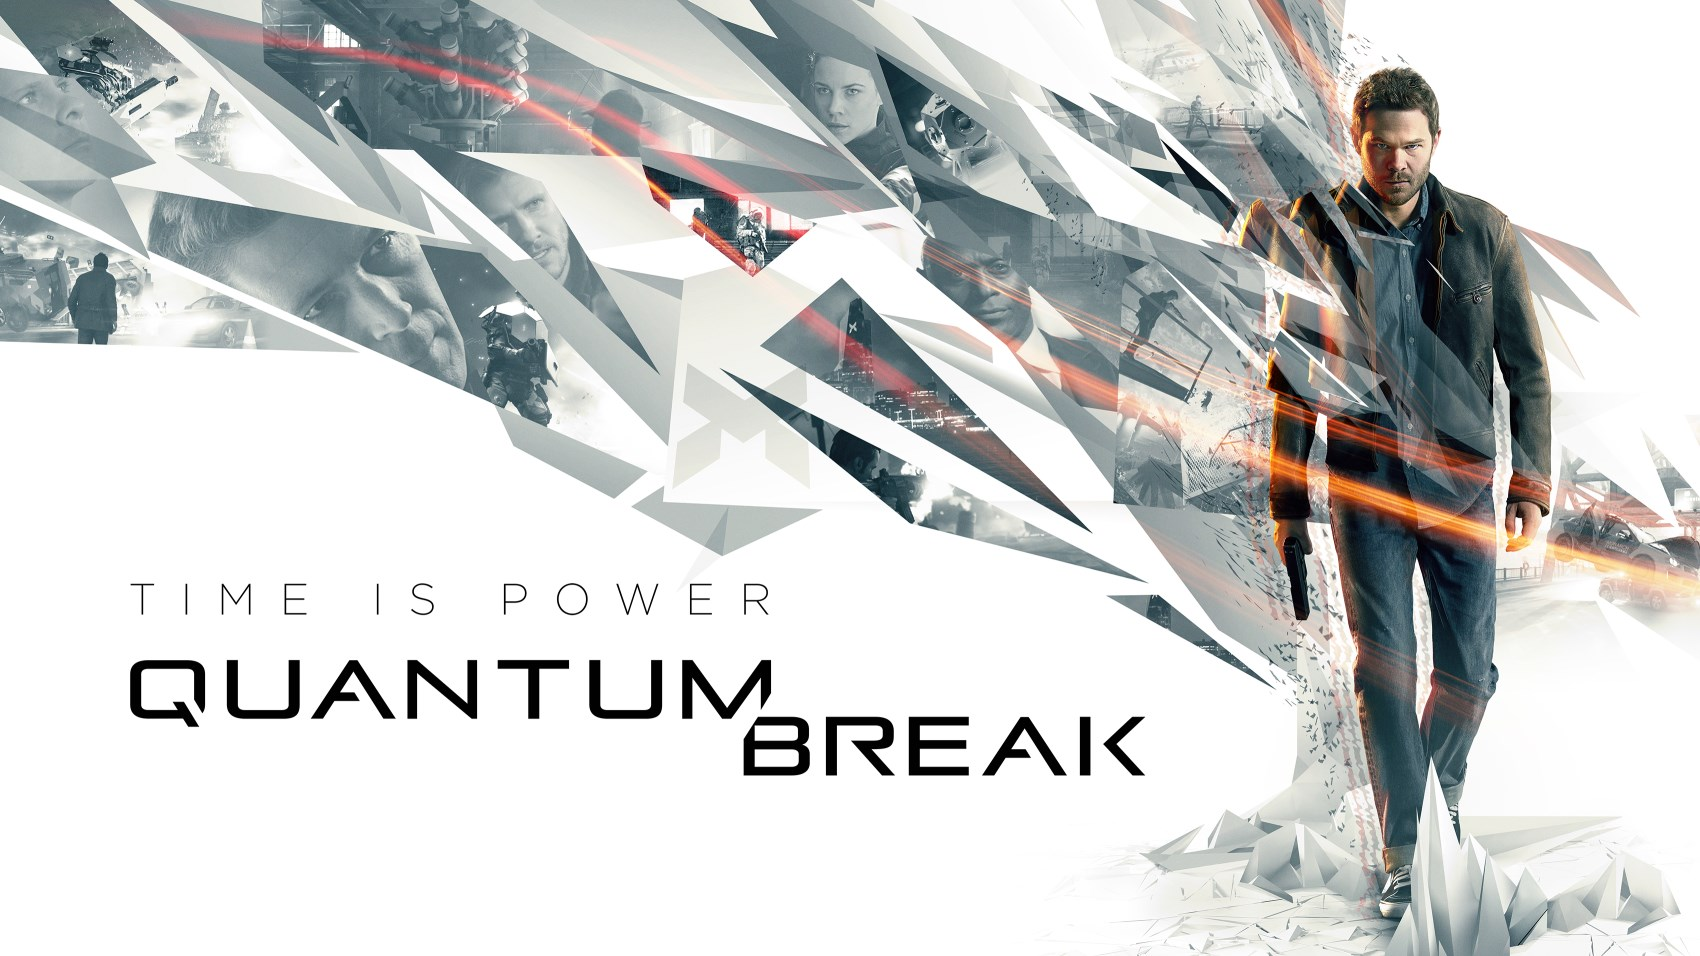 Quantum Break (1700 x 956)